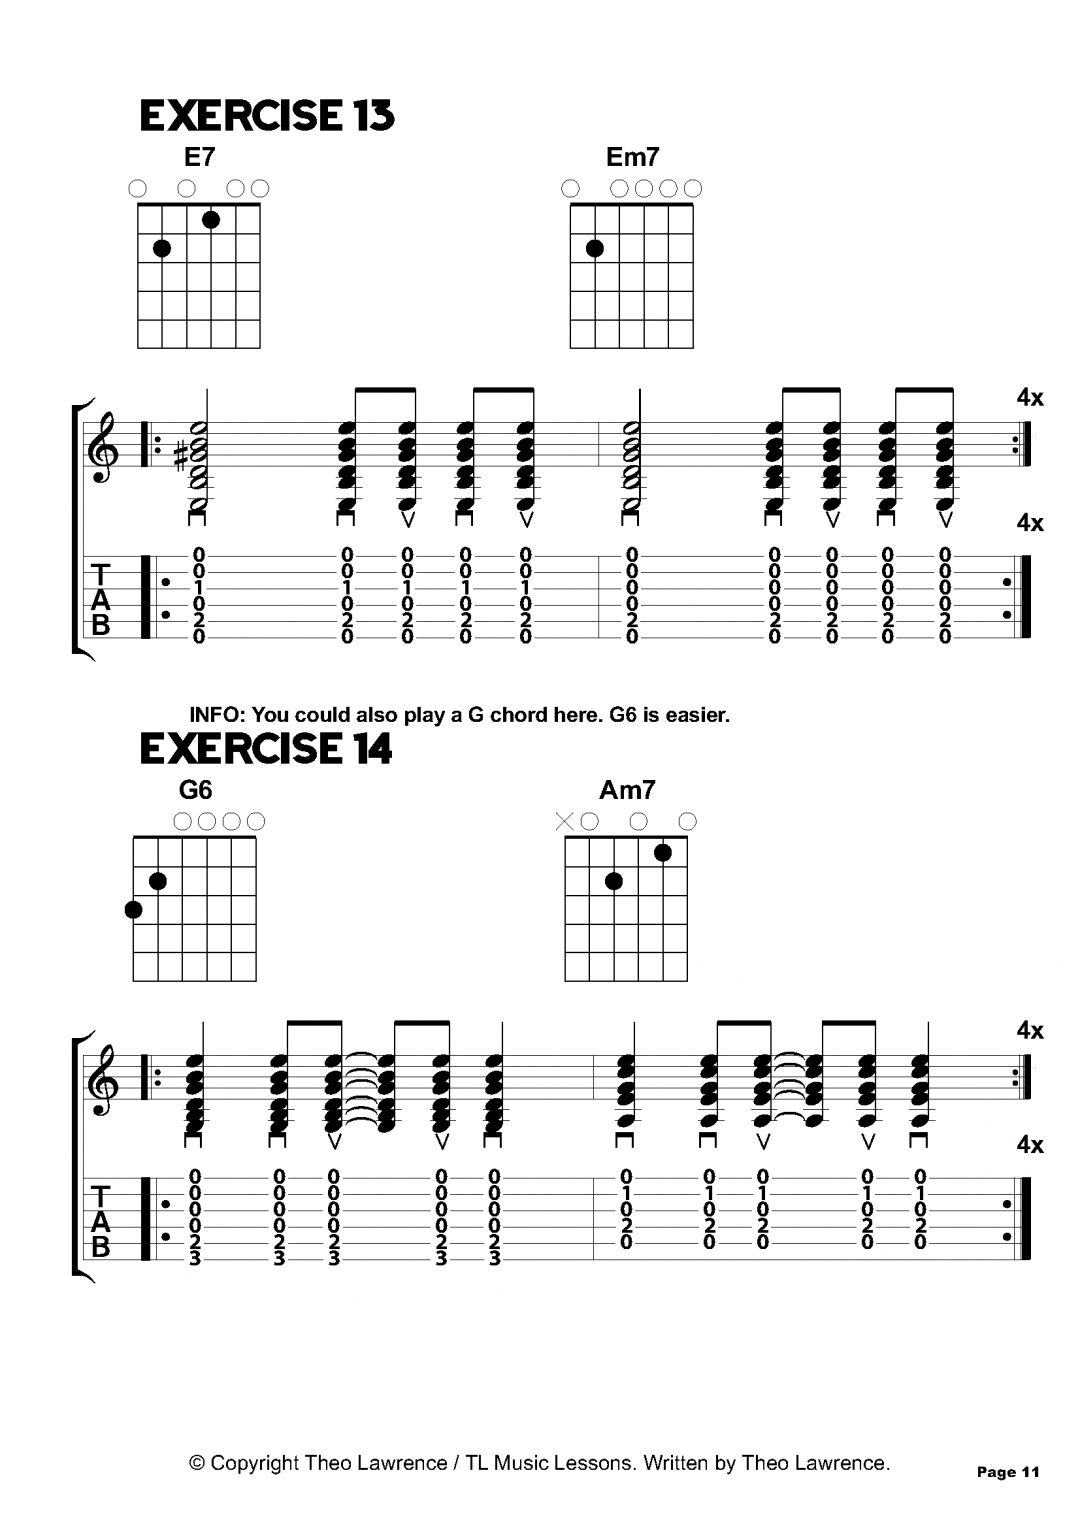 Exercises 13-14 – Inside The Book: 50 Chord Exercises for Beginners